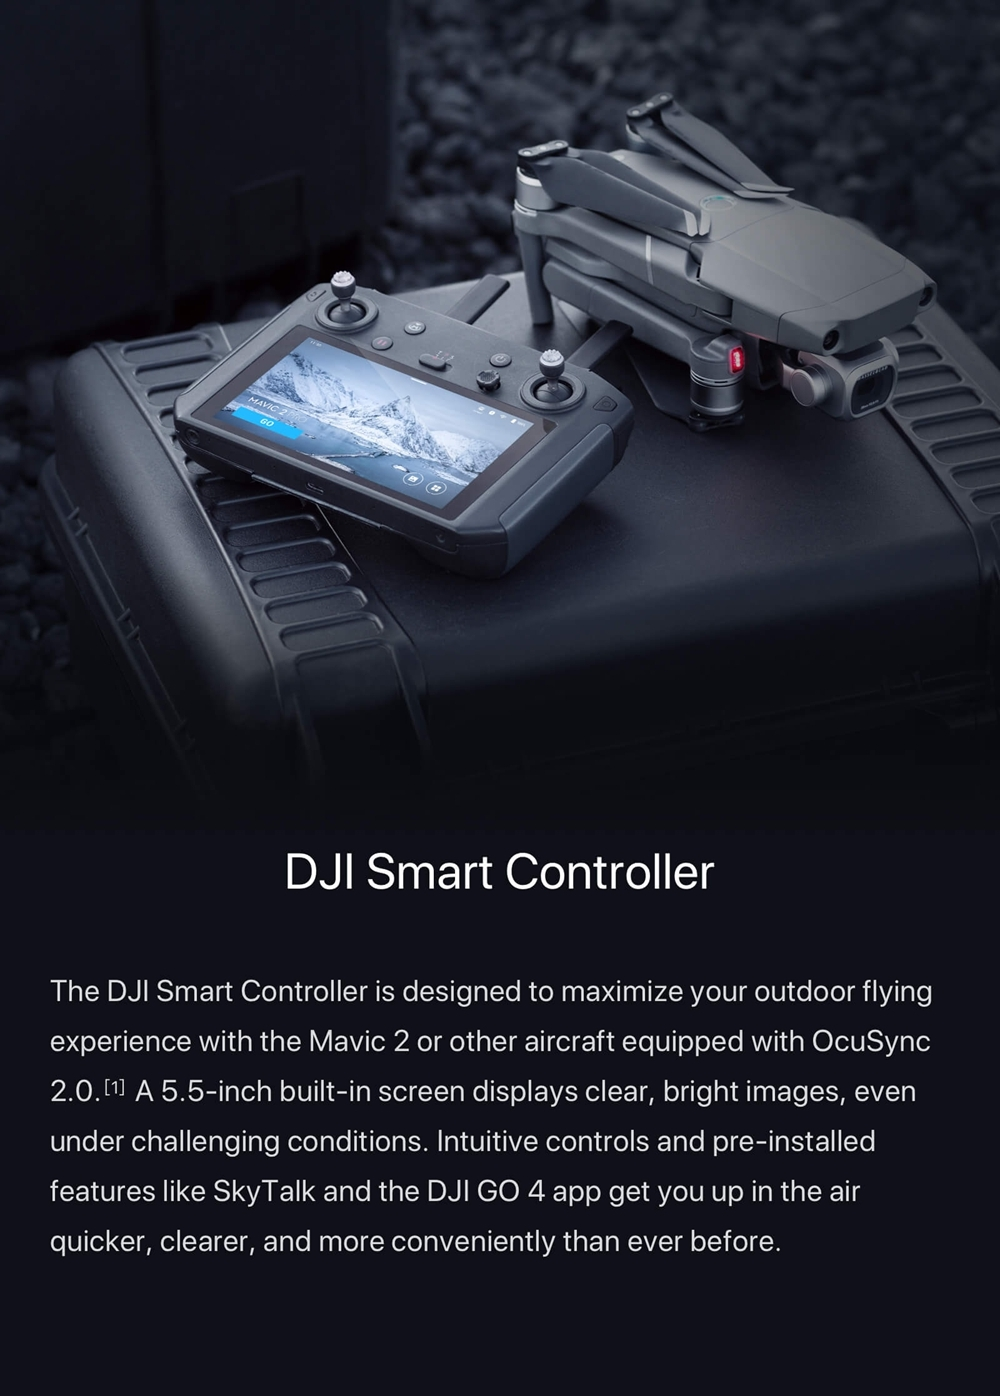 DJI Smart Controller Transmitter with 5.5-inch 1080P Screen OcuSync 2.0 Go Share SkyTalk for DJI Mavic 2 Series RC Drone